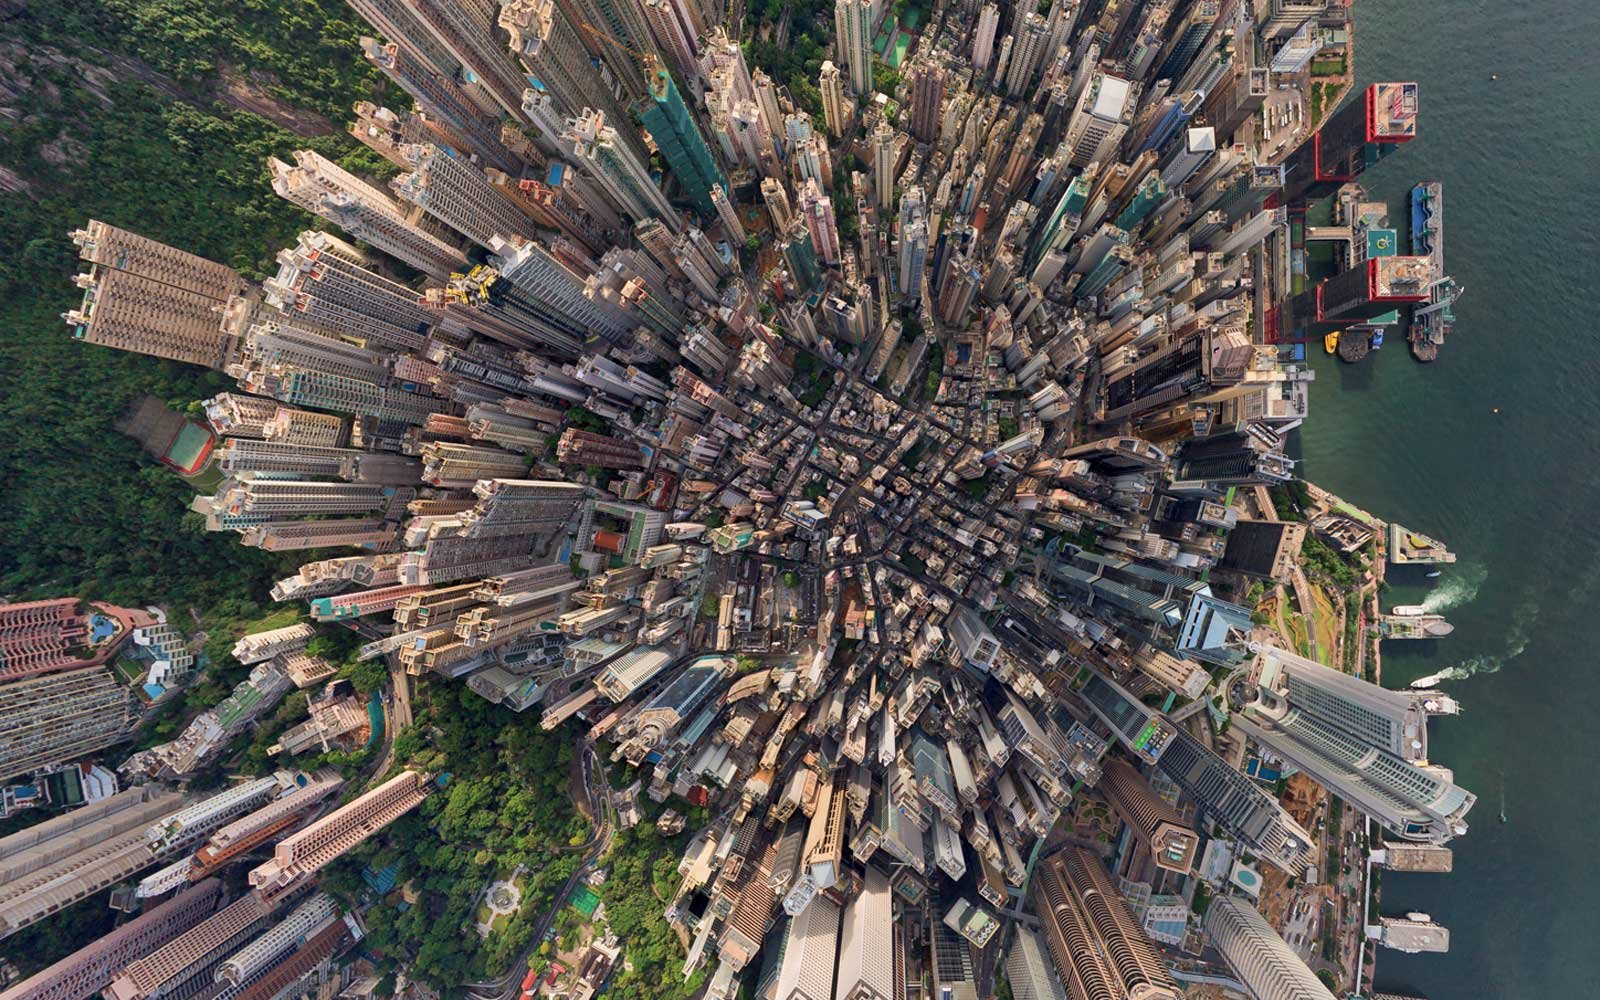 12 Aerial Photos That Show the World in Ways Youve Never Seen